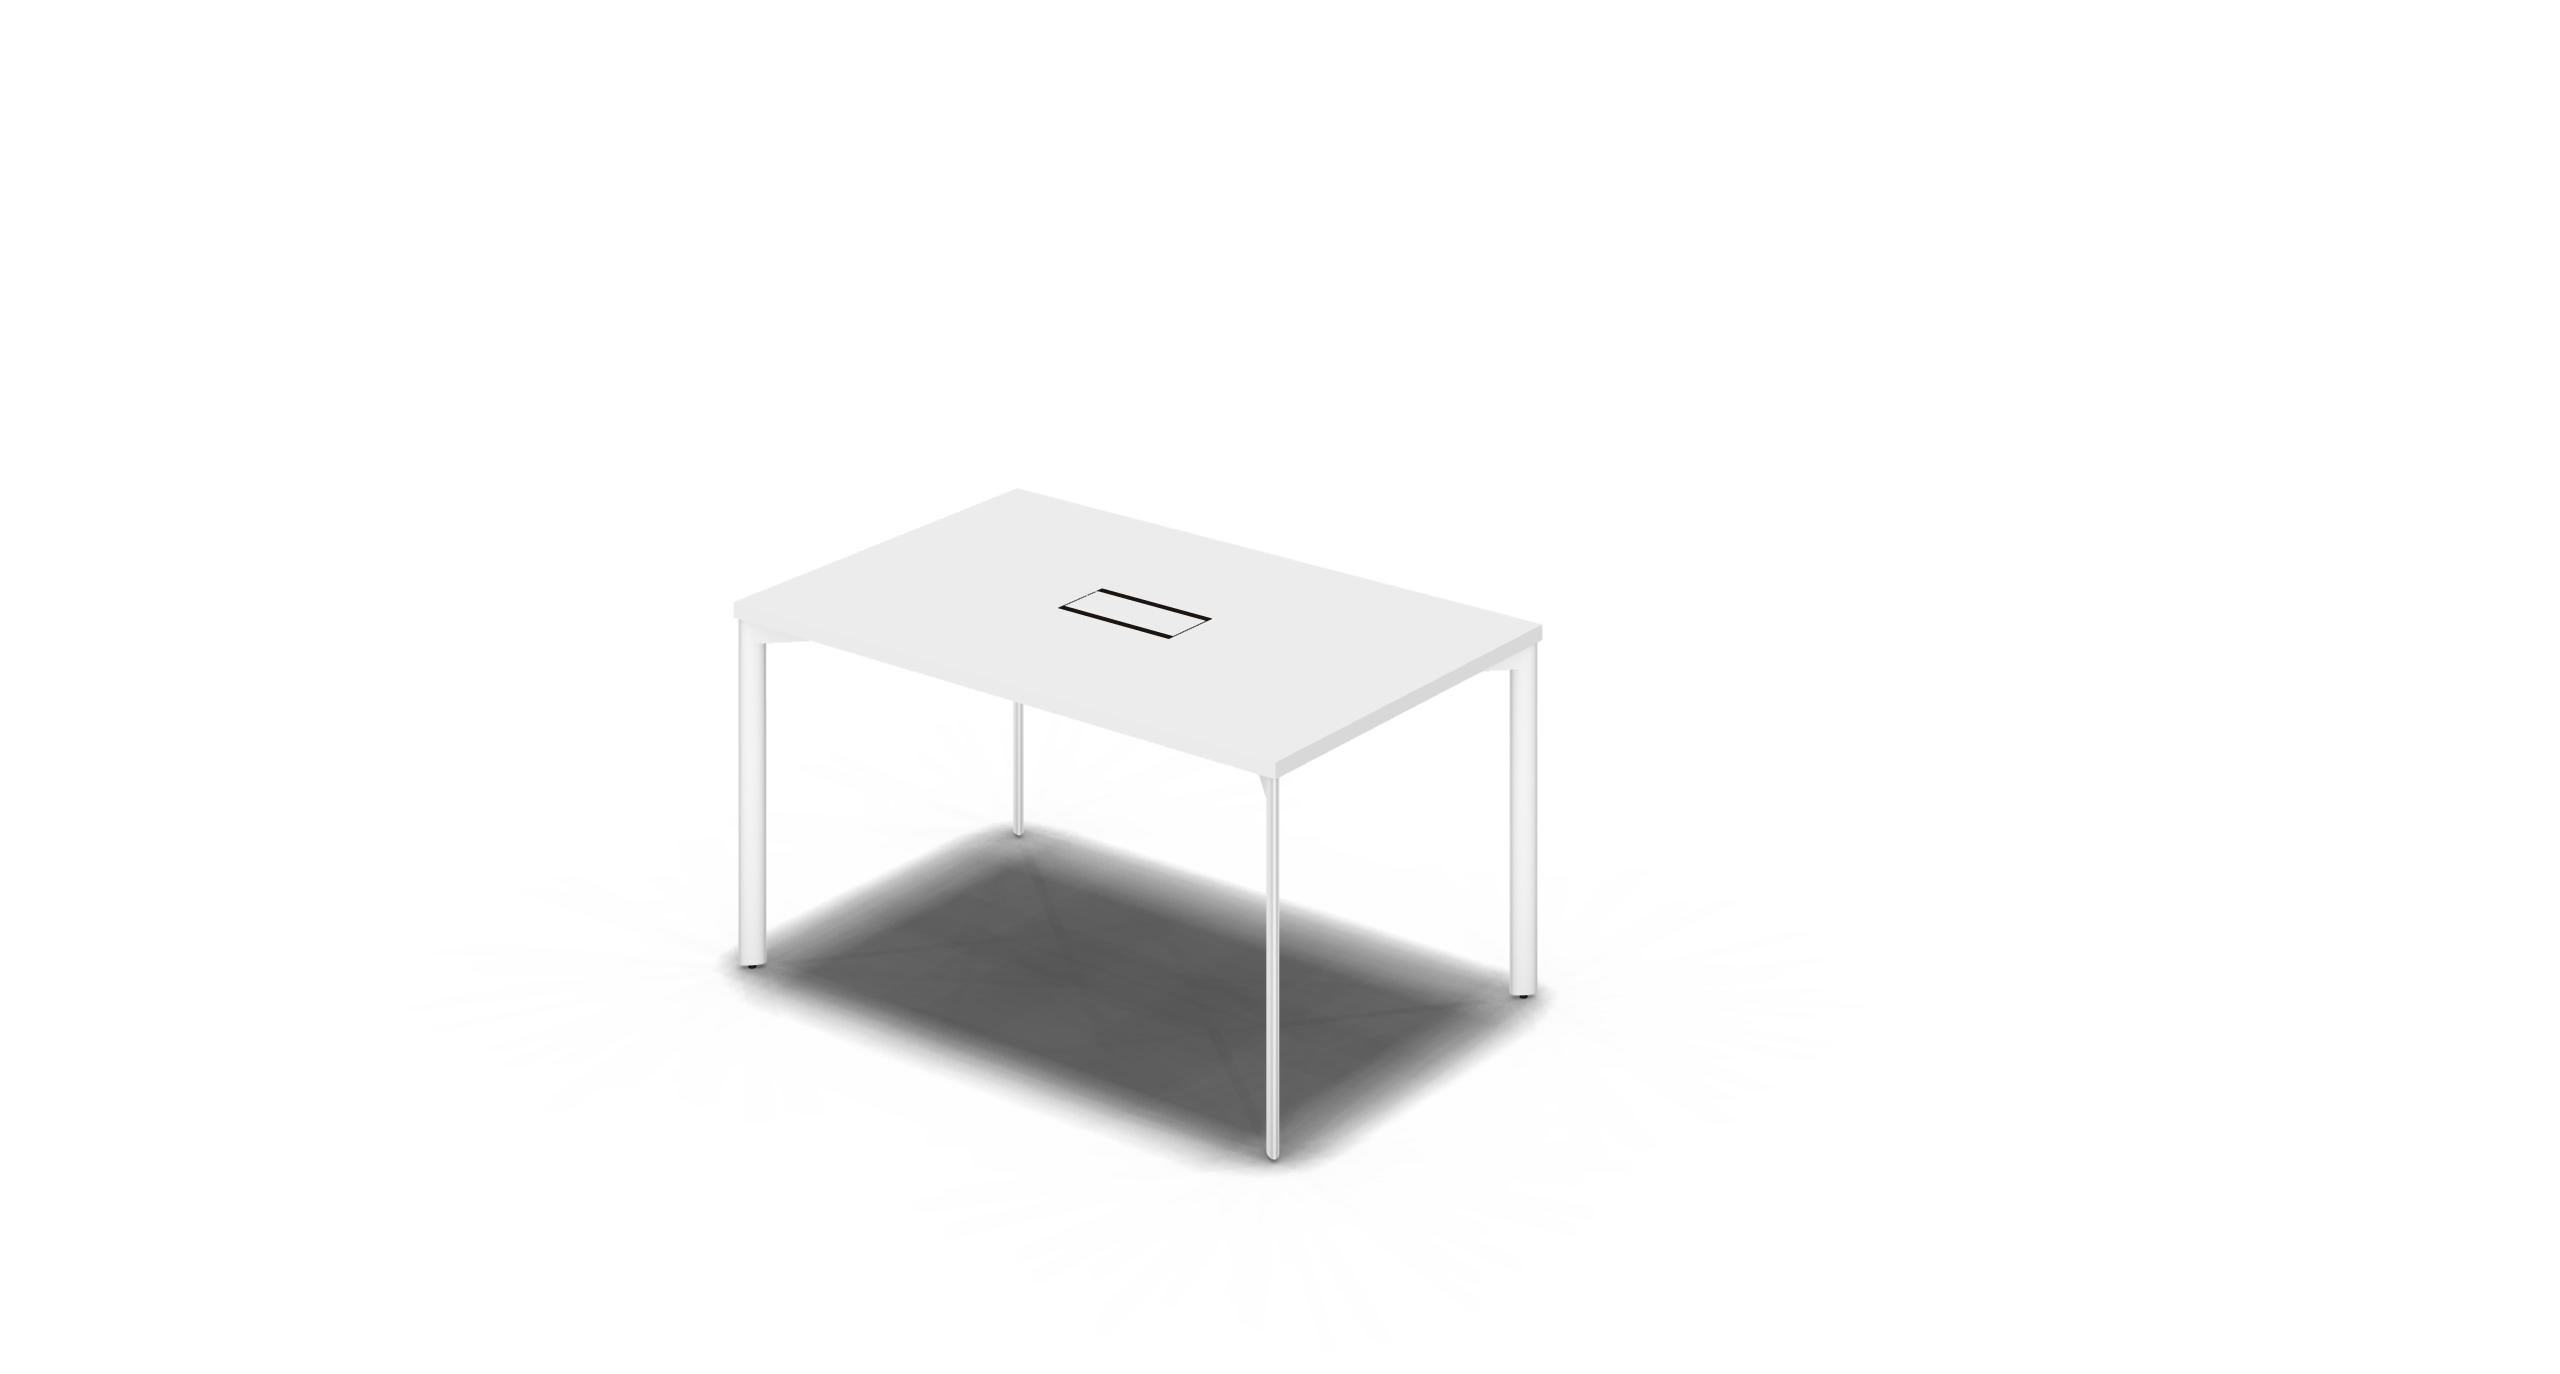 Table_Slim_1200x750_White_White_withOption